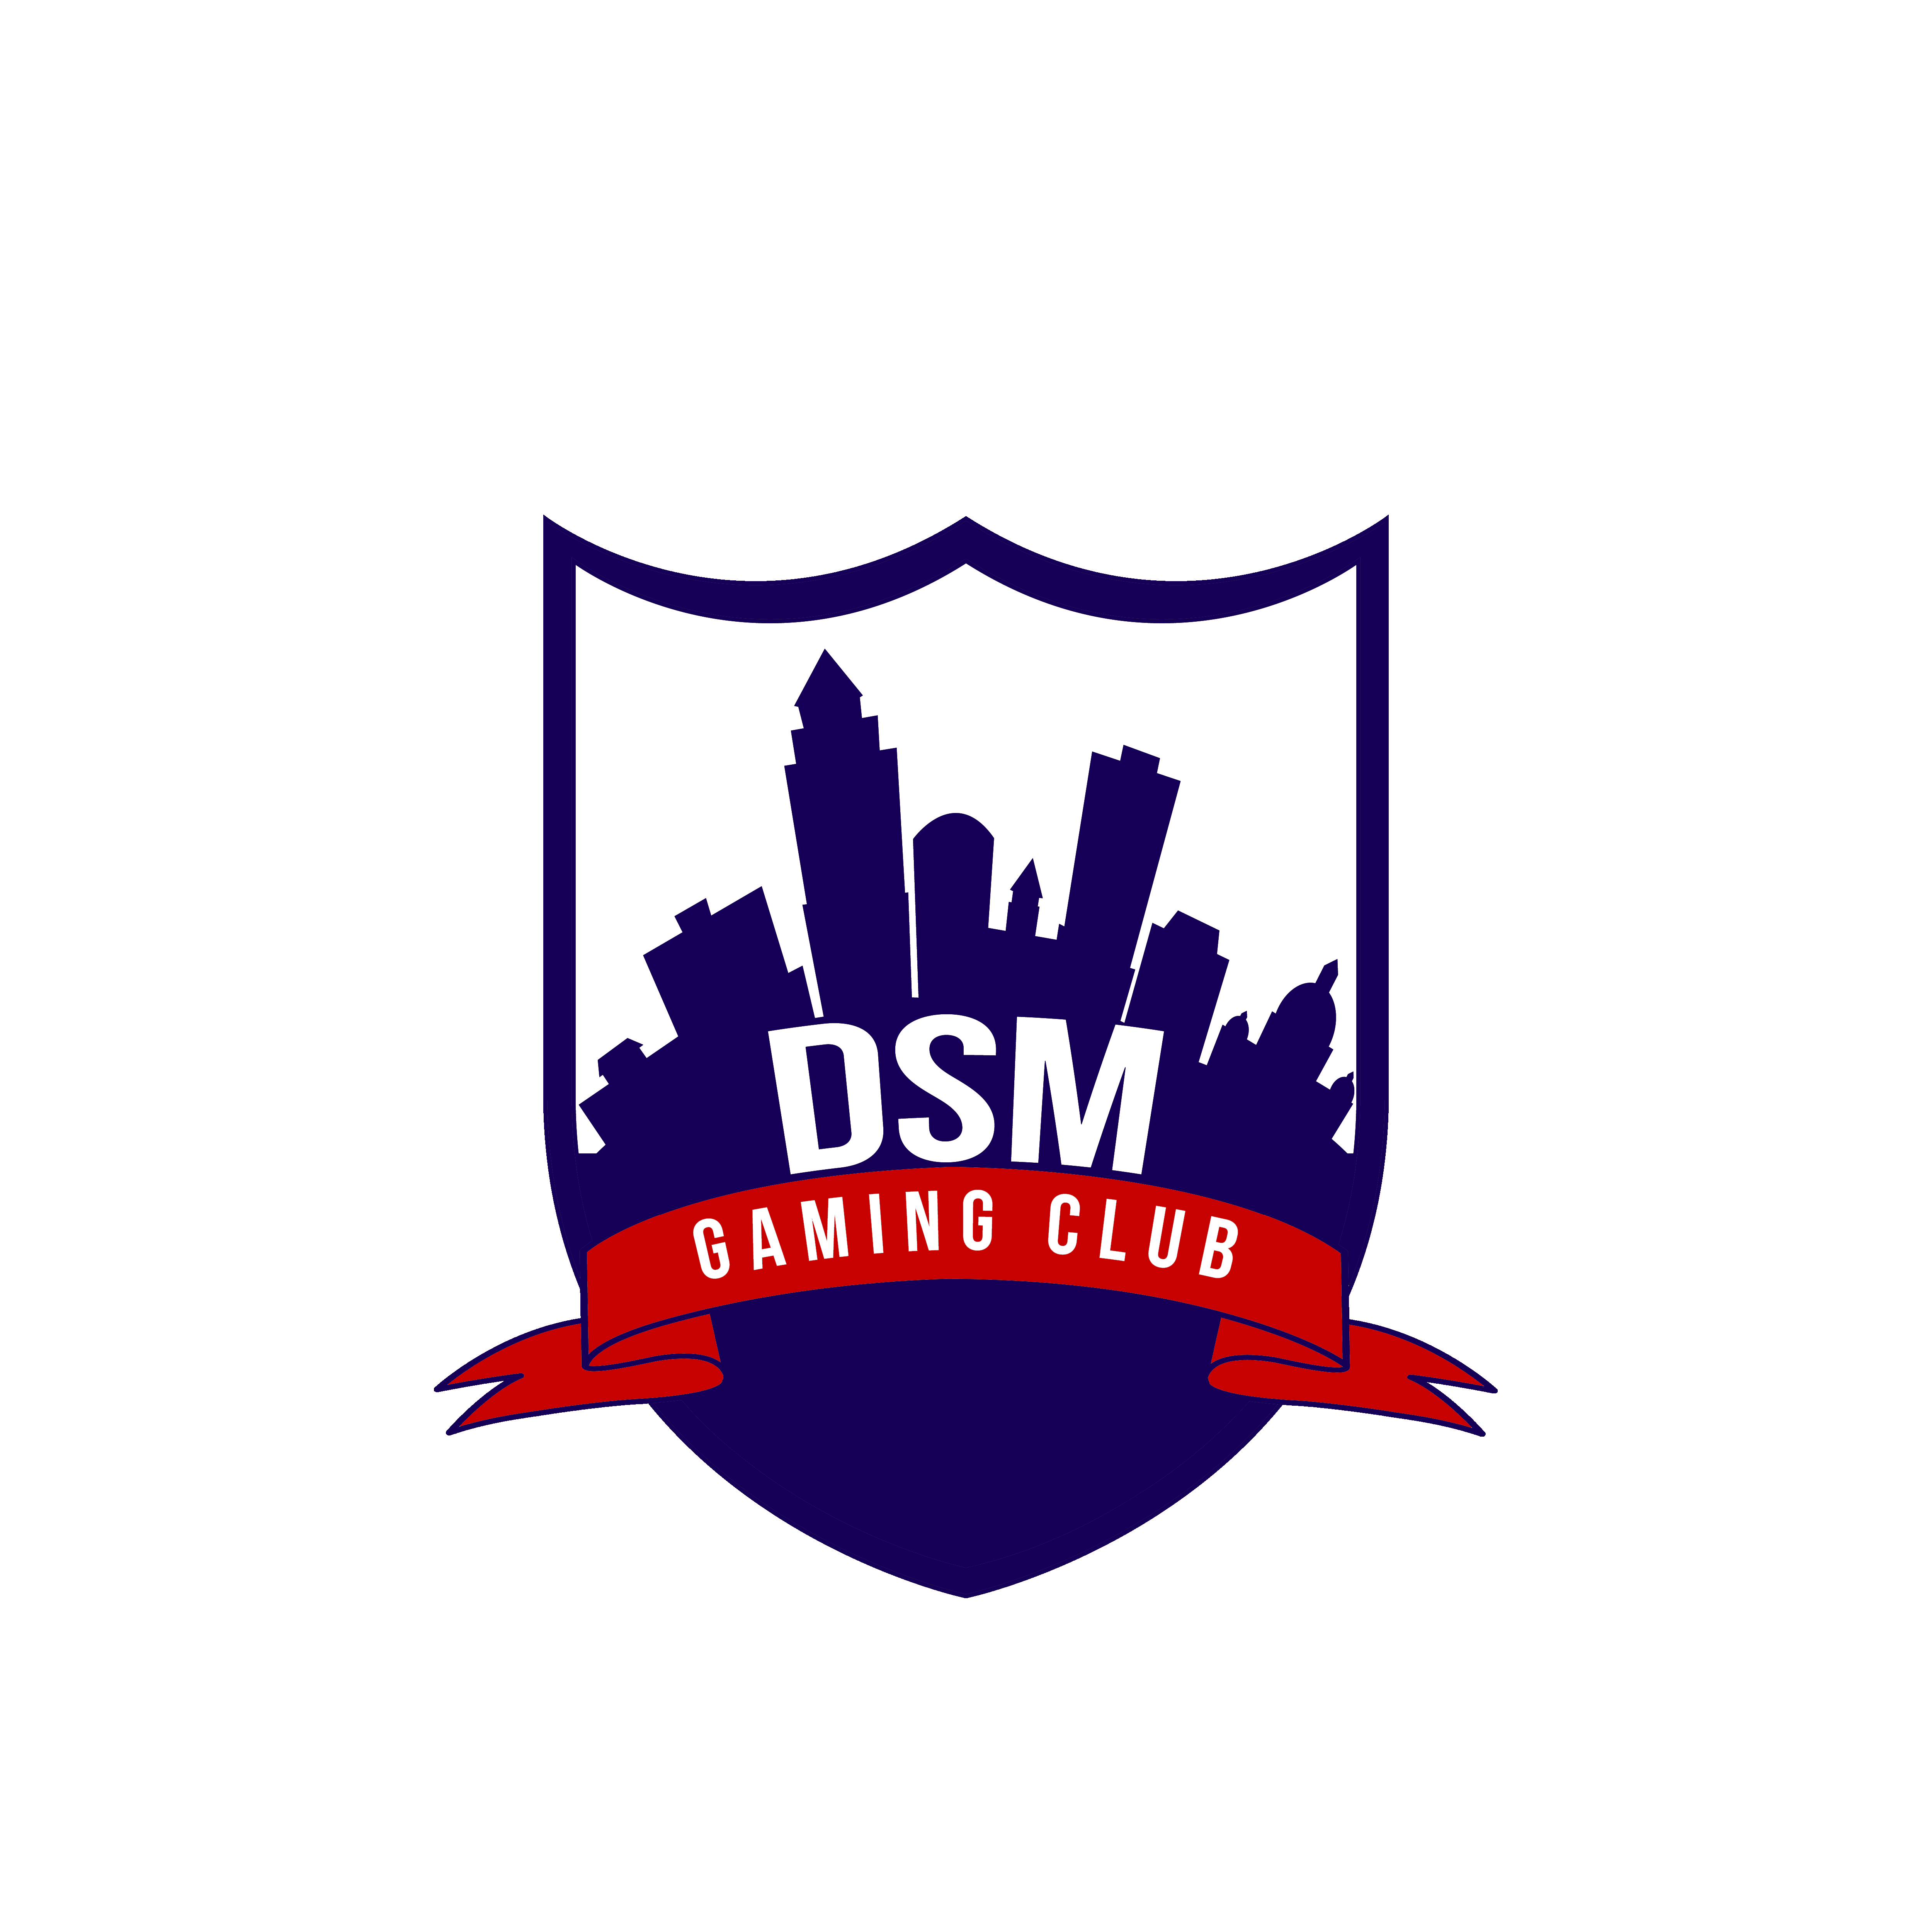 Des Moines Gaming Club